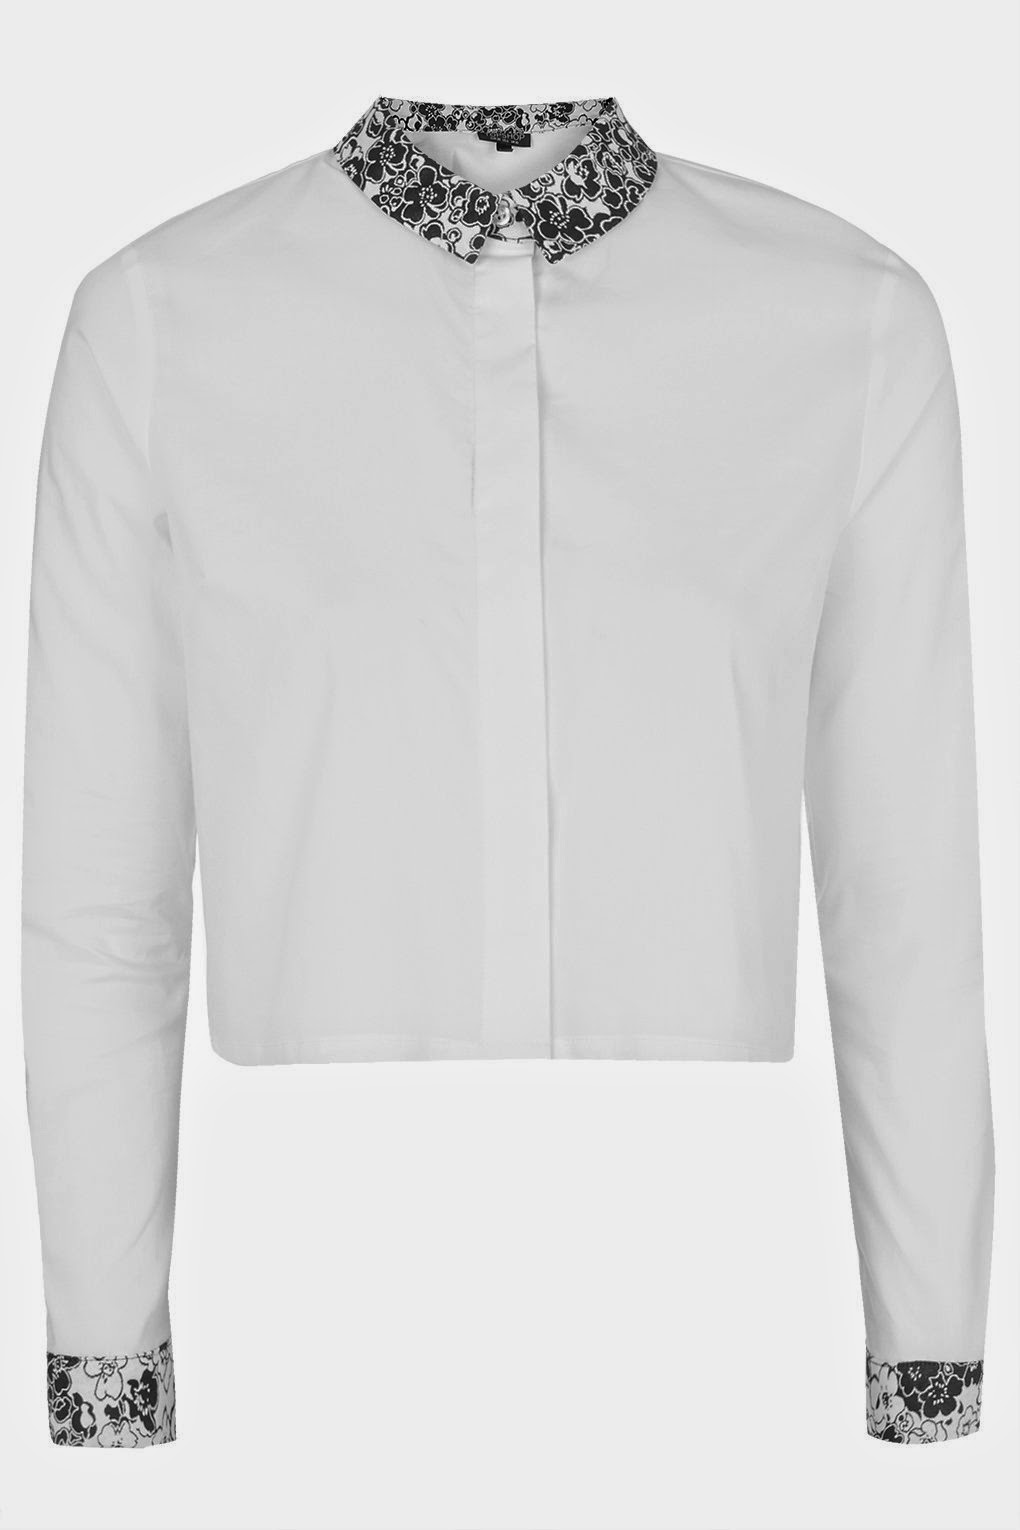 white shirt with patterned collar,